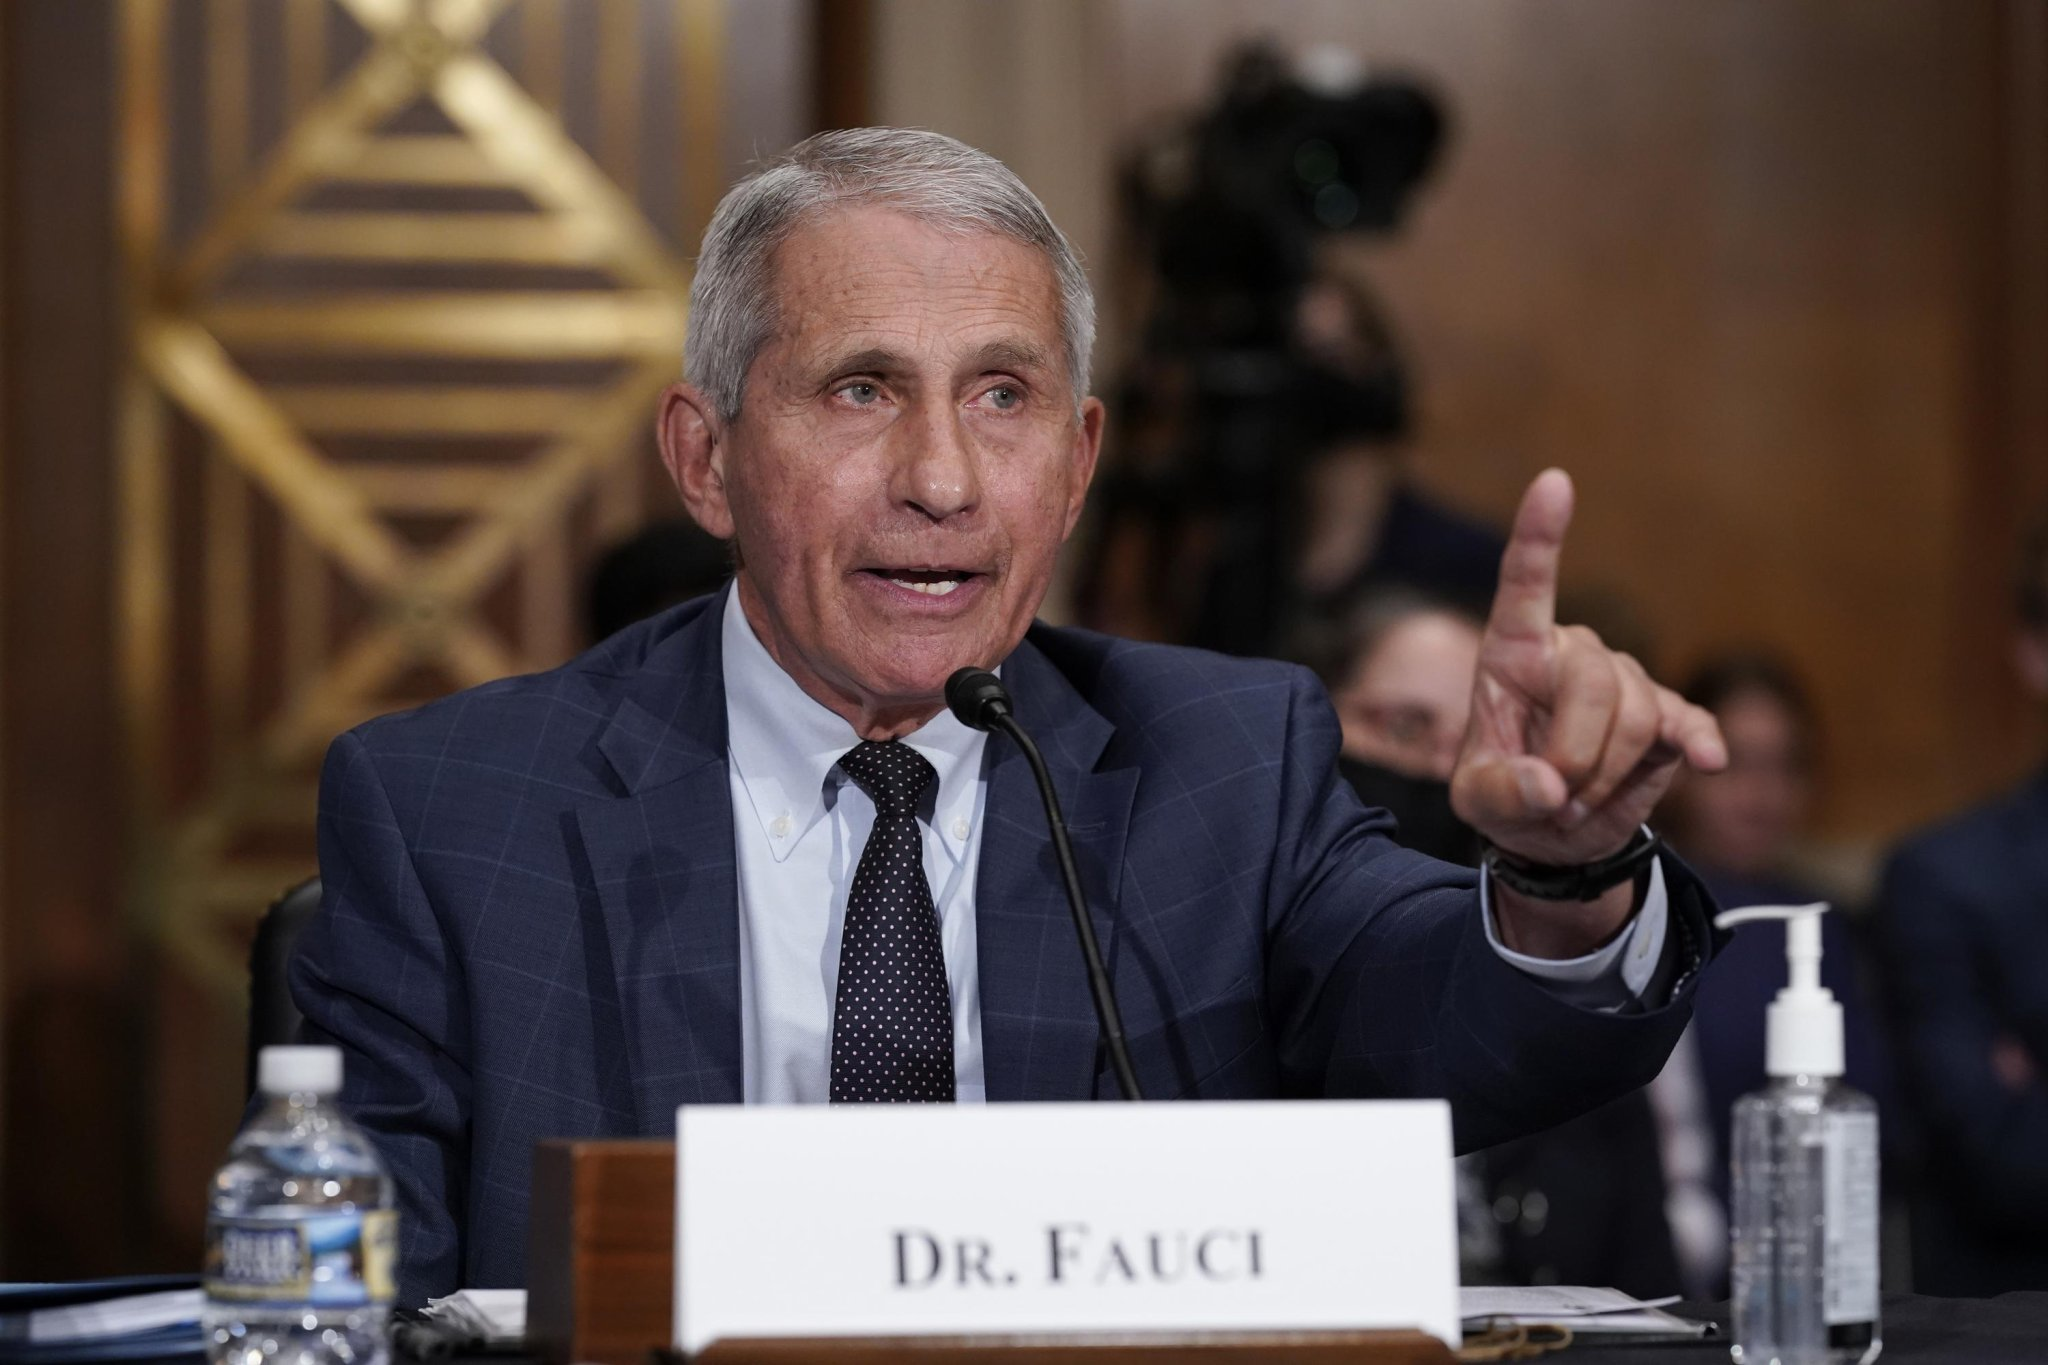 Dr. Fauci: U.S. Could See New Variant If Community Spread Isn't Contained